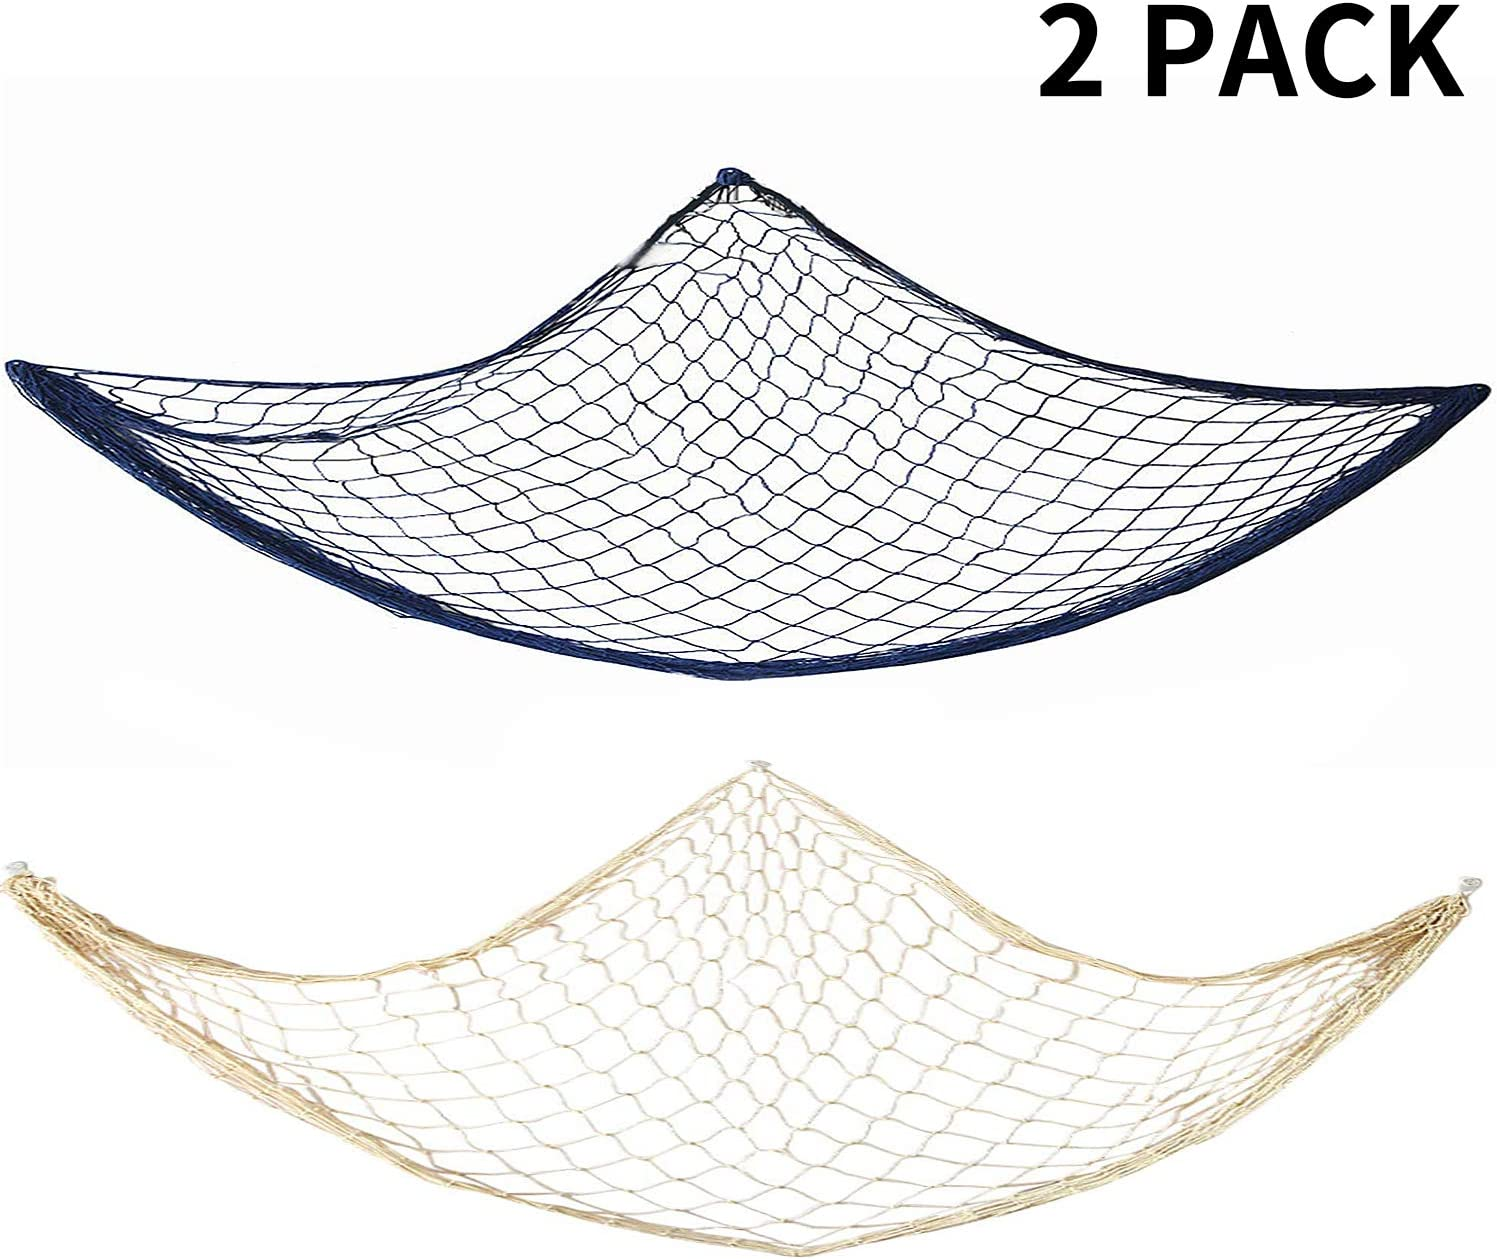 Natural Creamy White and Ocean Blue Color 2 Pack Decorative Fishing Nets Bedroom Wall Hanging Decoration for Home D/écor Living Room Mediterranean Theme Party Fish Net Decor 40 x 78 Inches